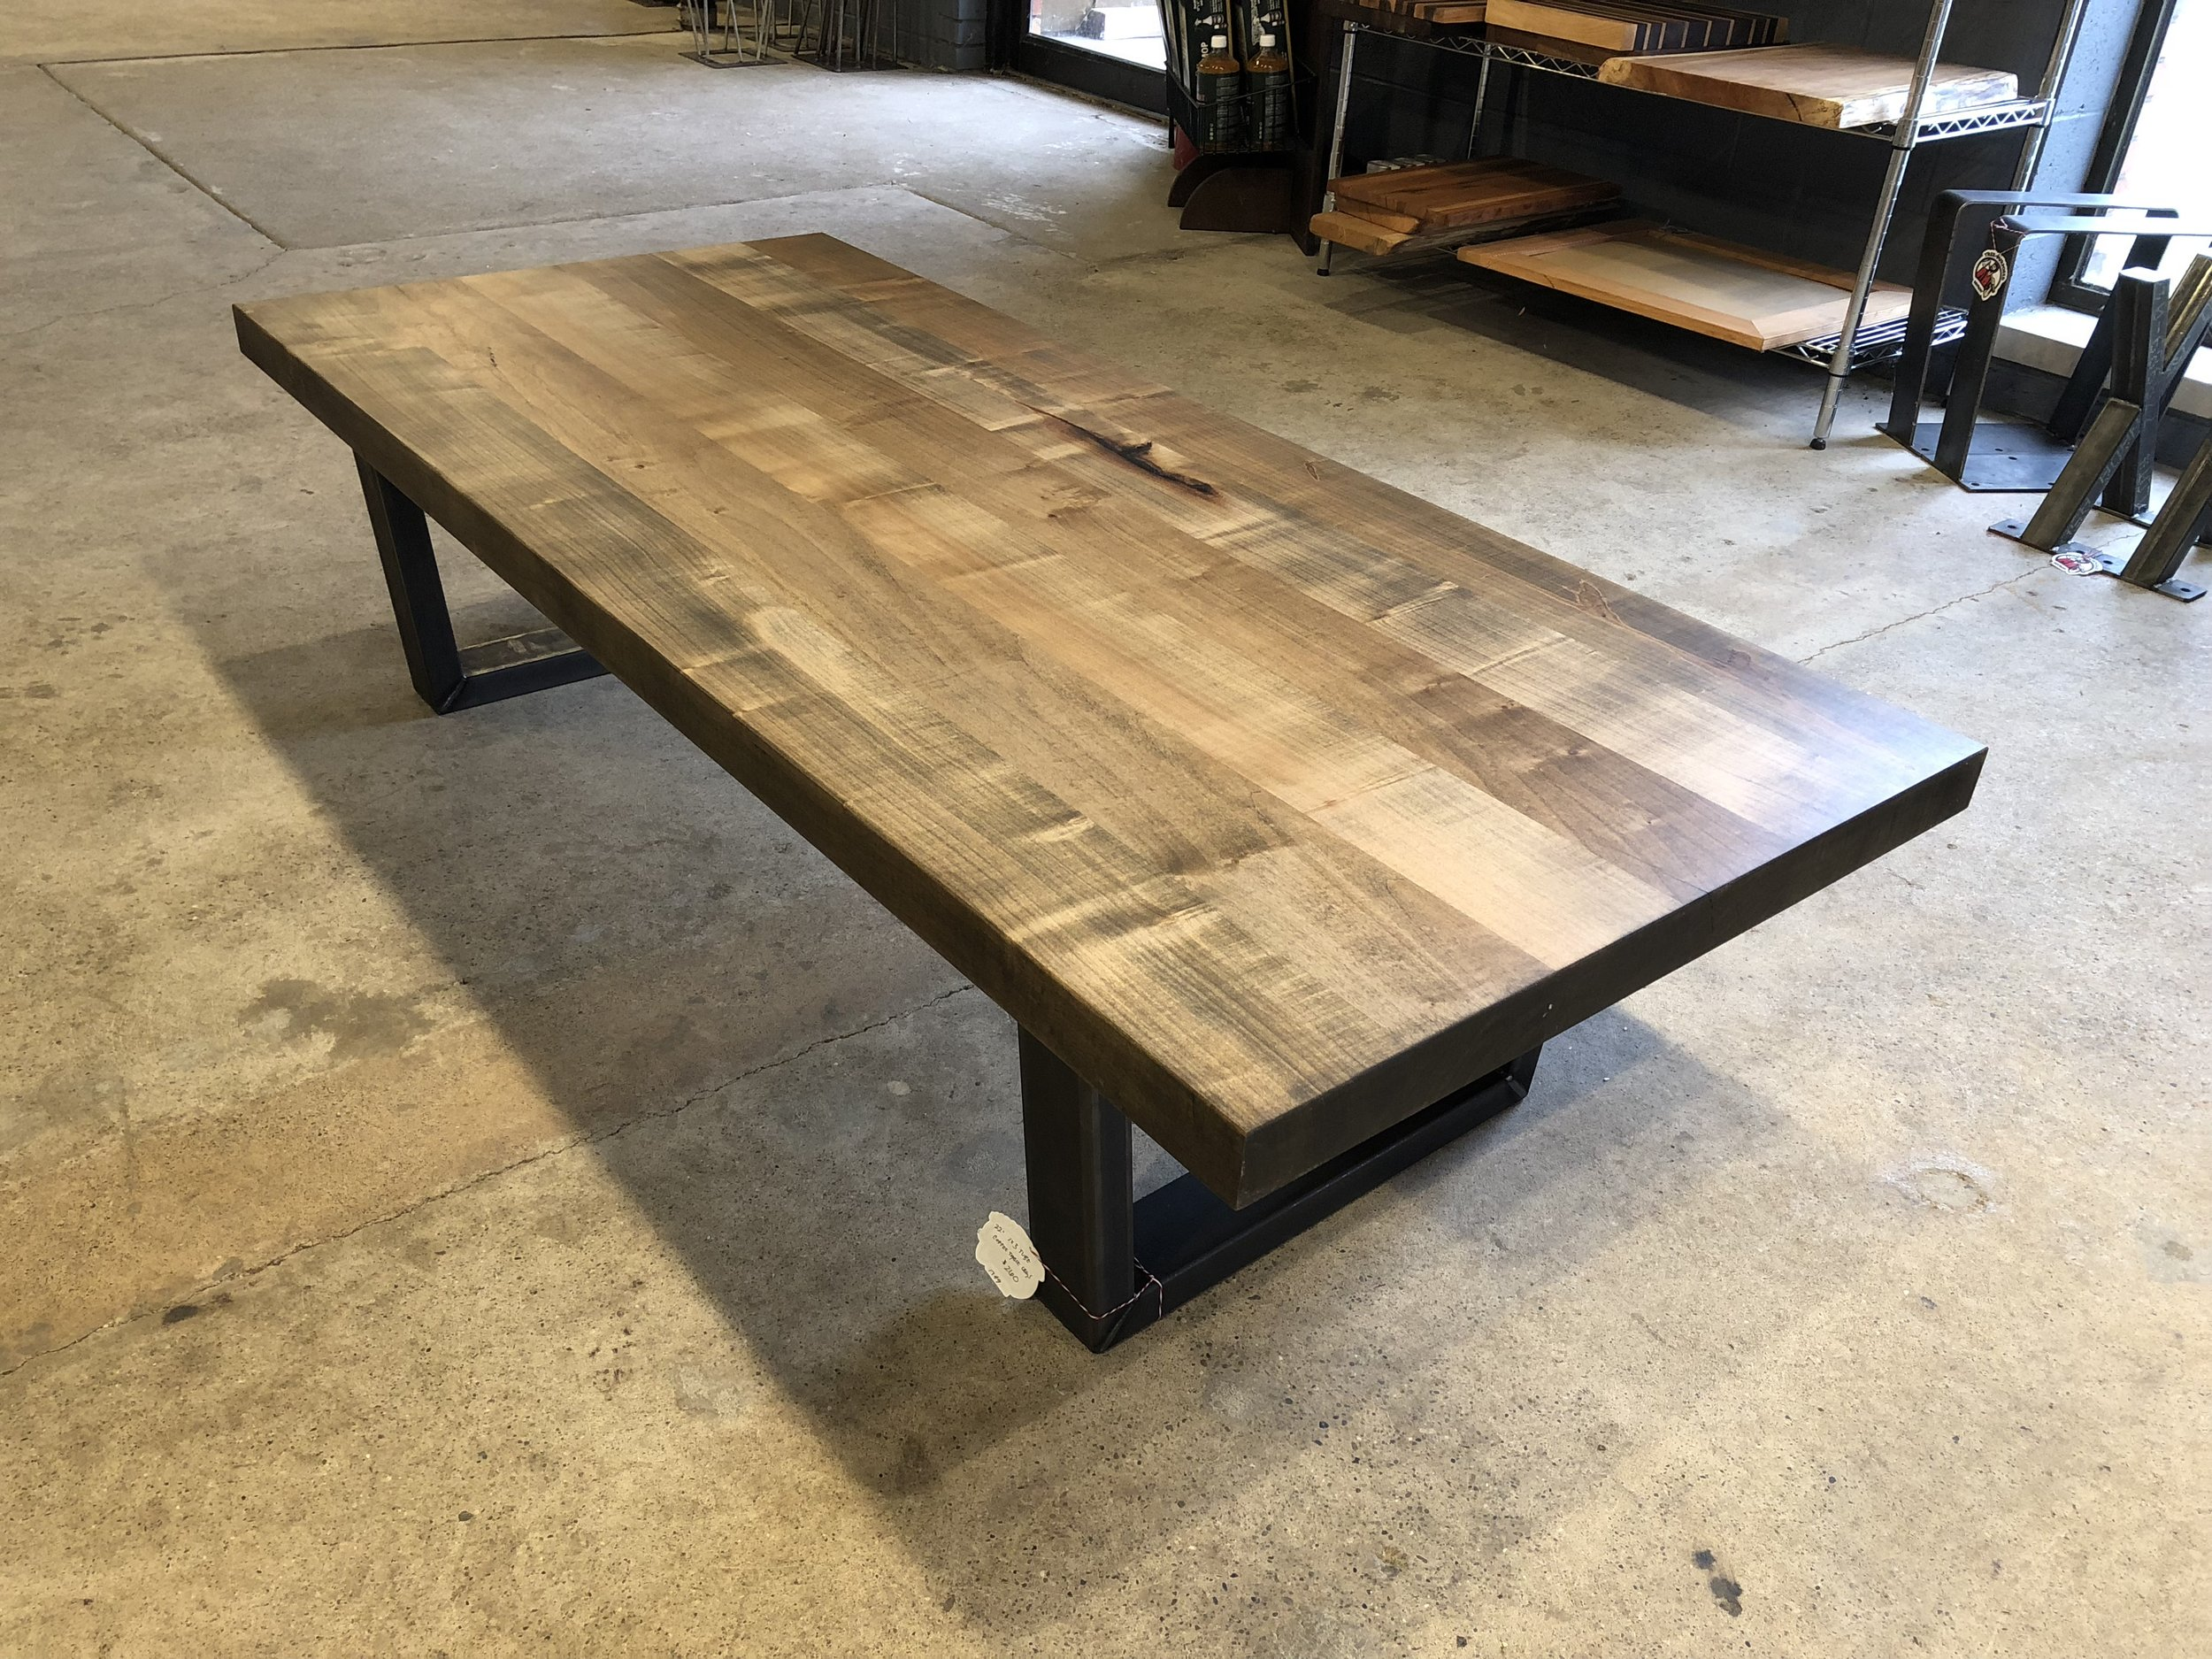 silver maple coffee table top tree purposed detroit michigan live edge slabs reclaimed wood